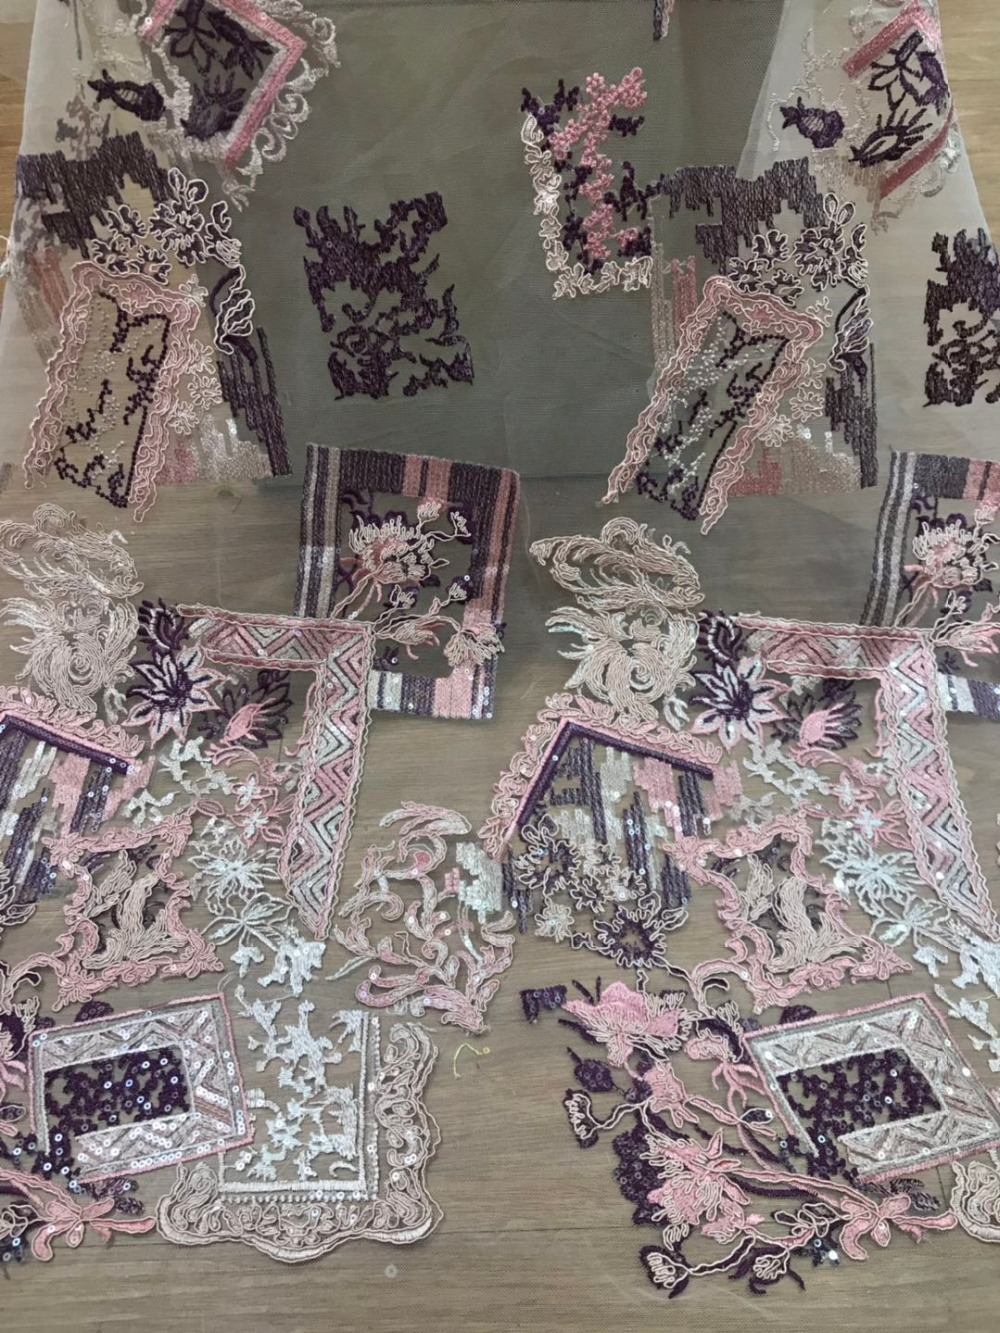 Nigerian Lace Fabrics For Wedding 2018 African French Lace Fabric High Quality Sequins LaceNigerian Lace Fabrics For Wedding 2018 African French Lace Fabric High Quality Sequins Lace